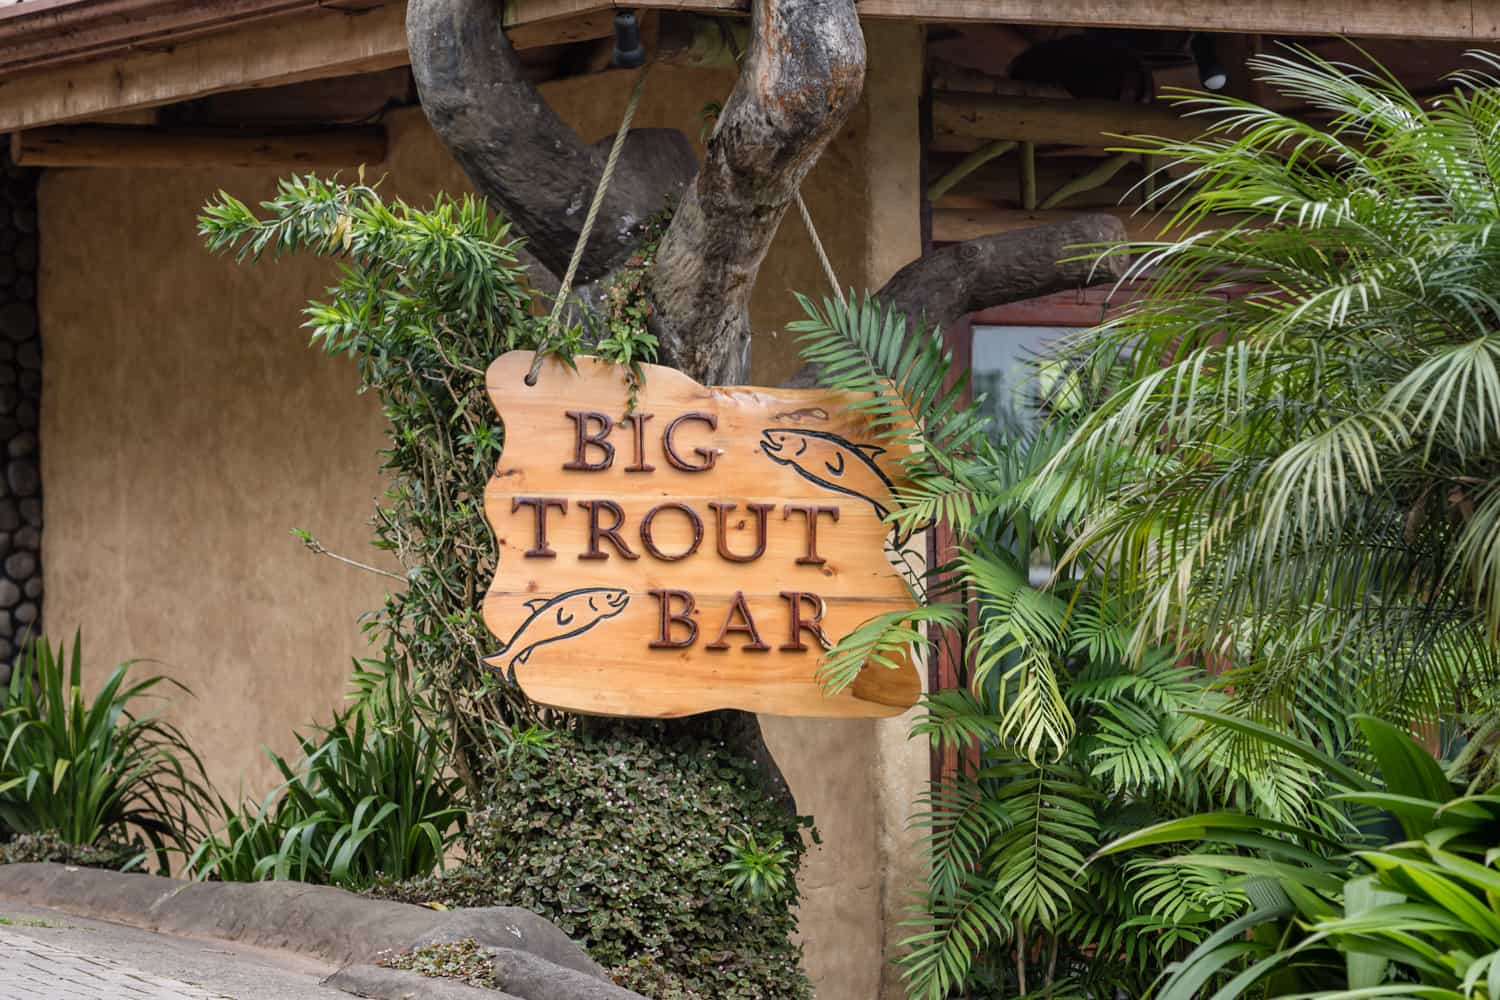 Big Trout Bar sign near entrance to wedding event location.